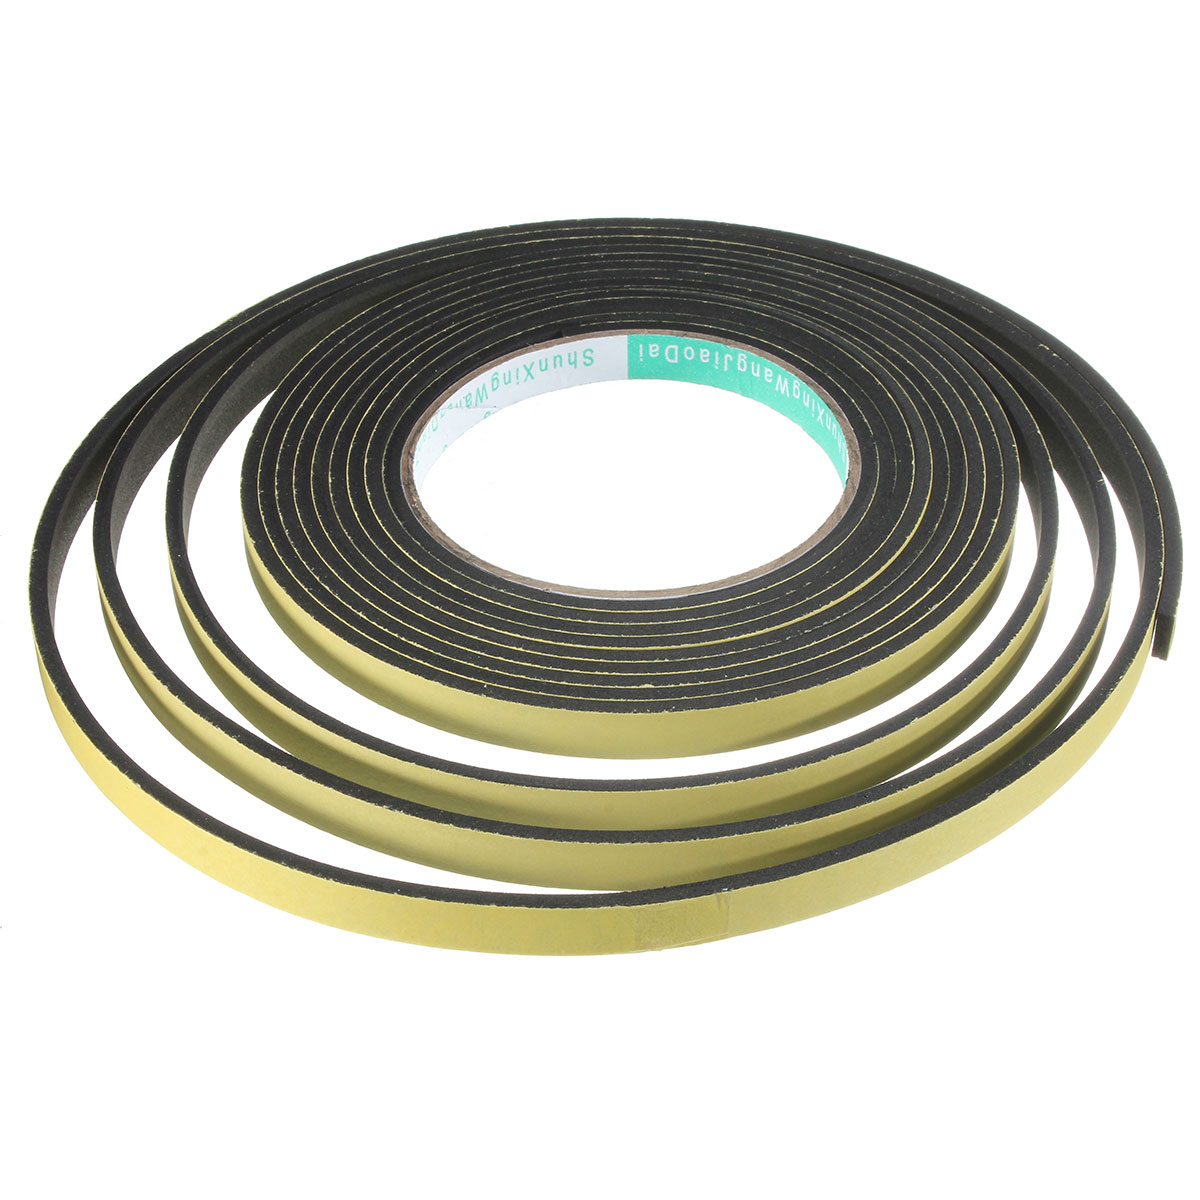 5m x 3x10mm Single Sided Adhesive Waterproof Weather Stripping Foam Sponge Rubber Strip Tape for Window Door Seal Strip5m x 3x10mm Single Sided Adhesive Waterproof Weather Stripping Foam Sponge Rubber Strip Tape for Window Door Seal Strip